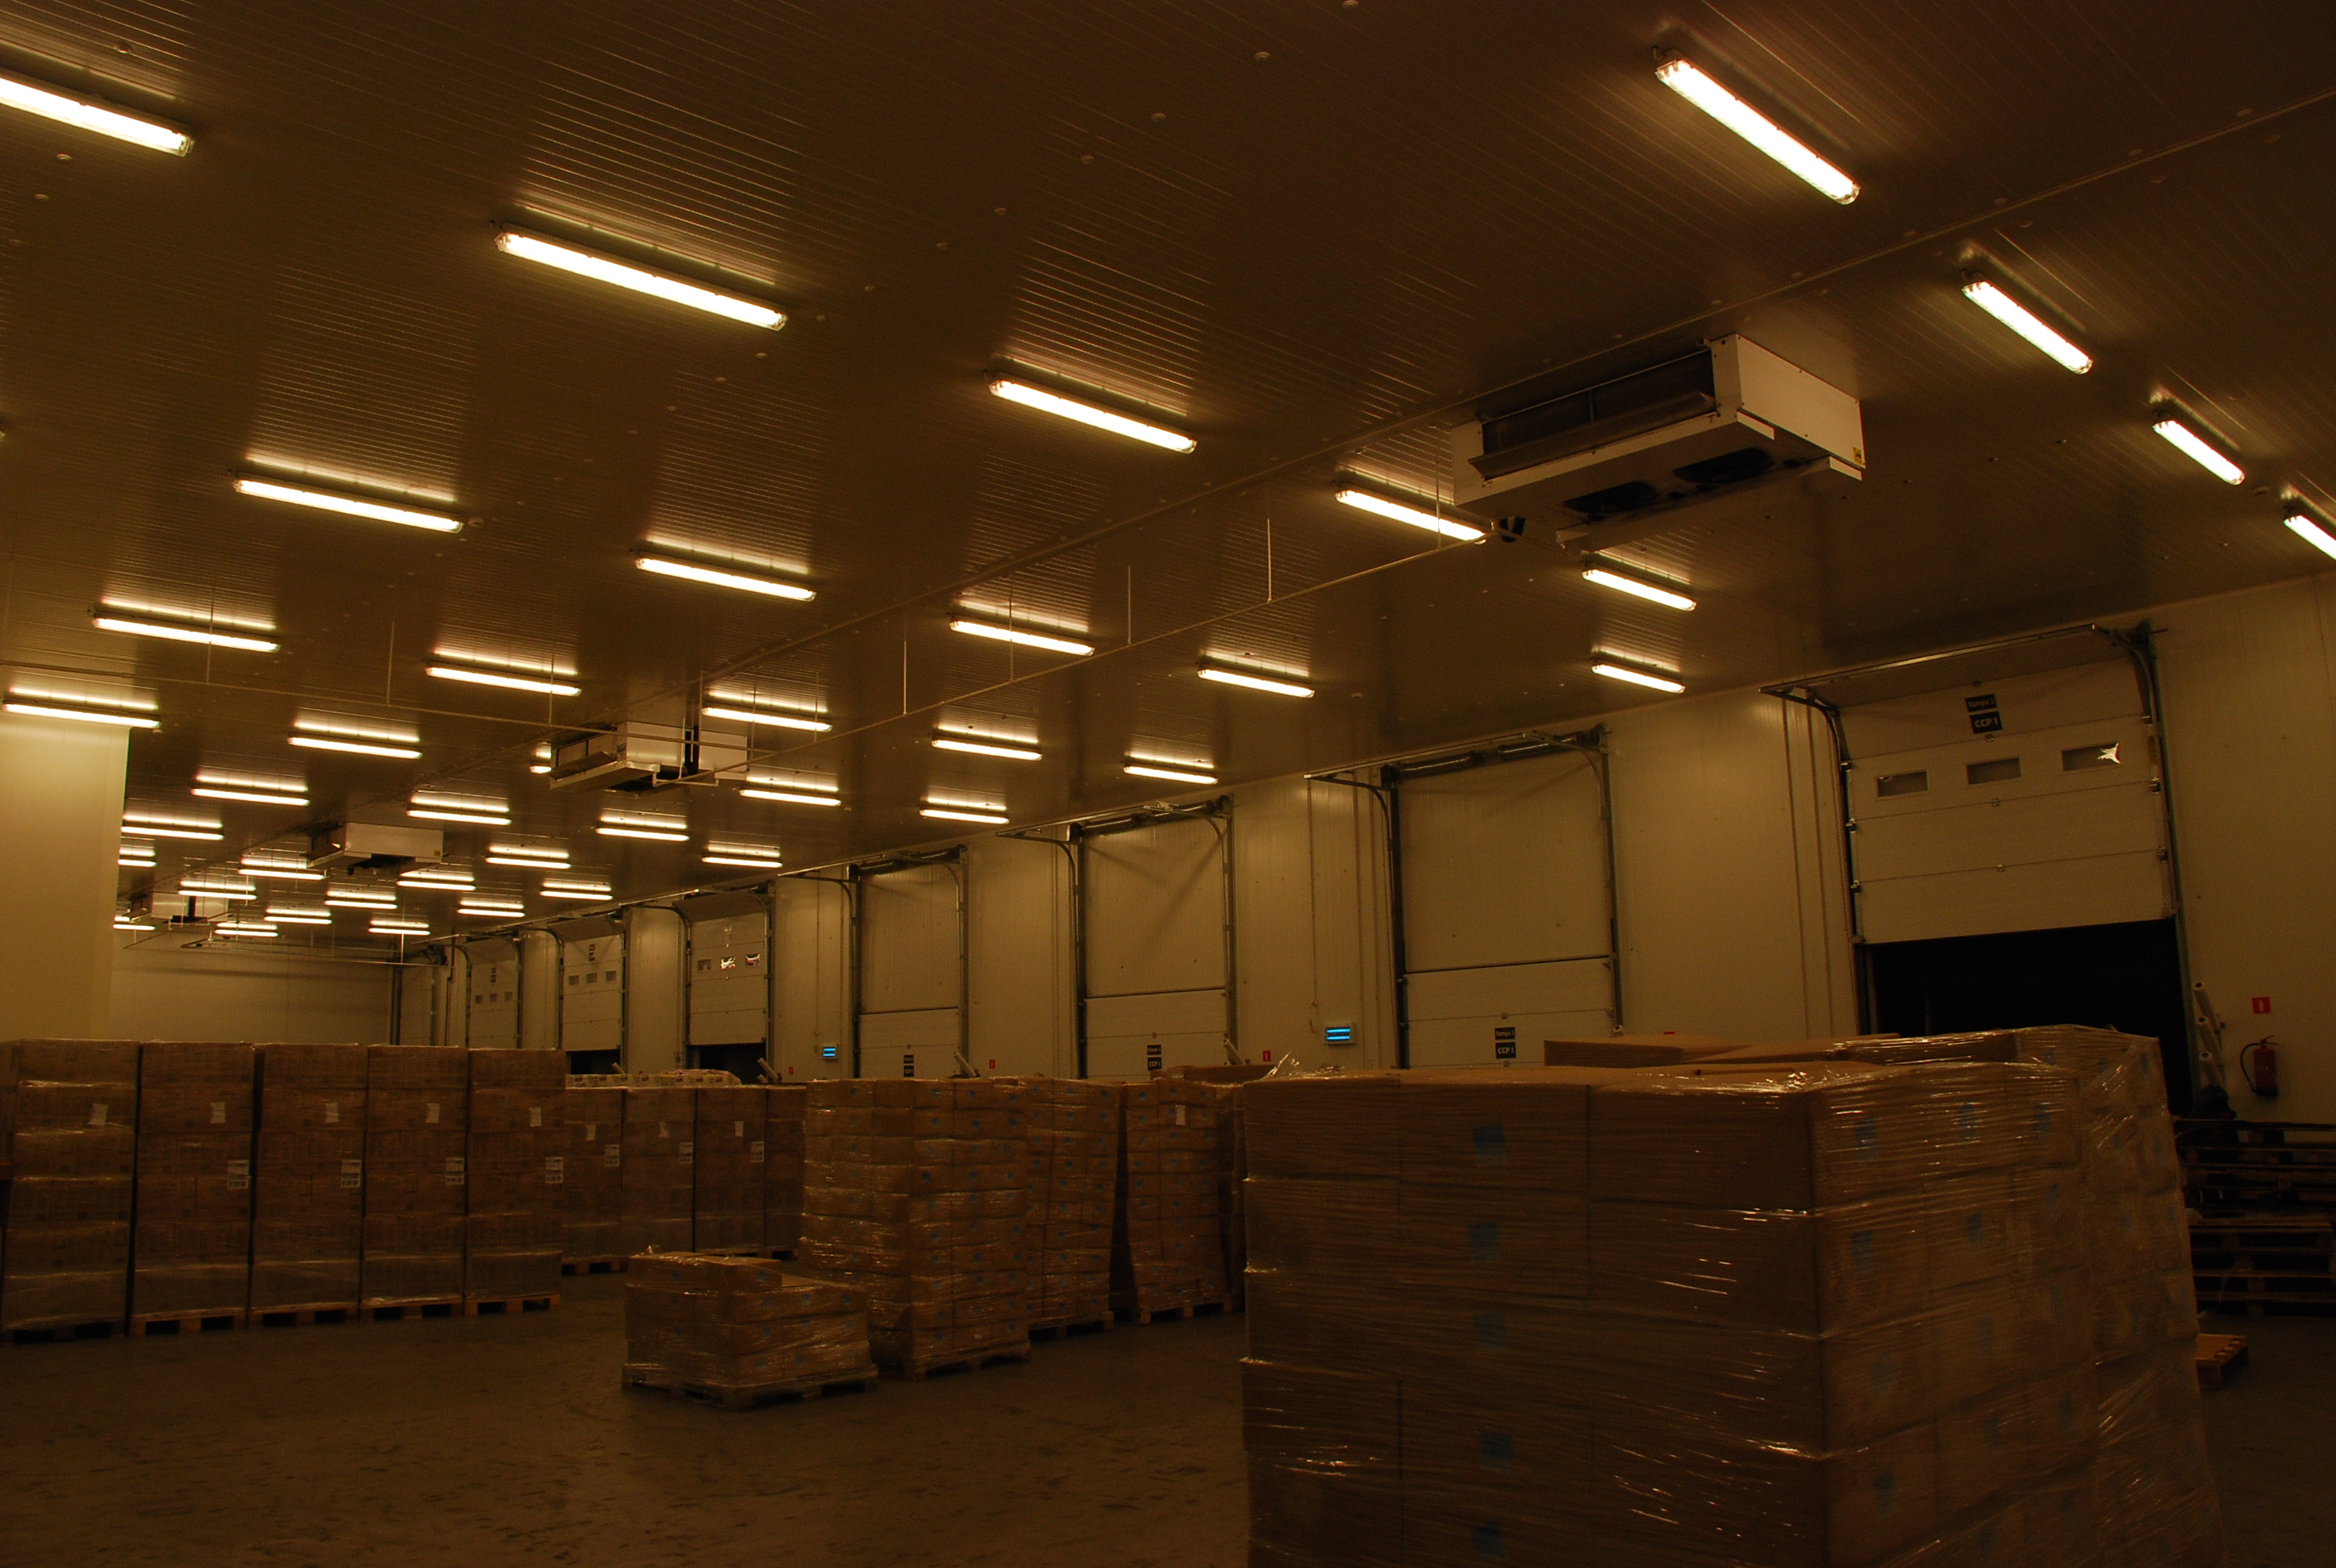 Pago sorting room - Katowice - 4 HDI dual discharge evaporators 